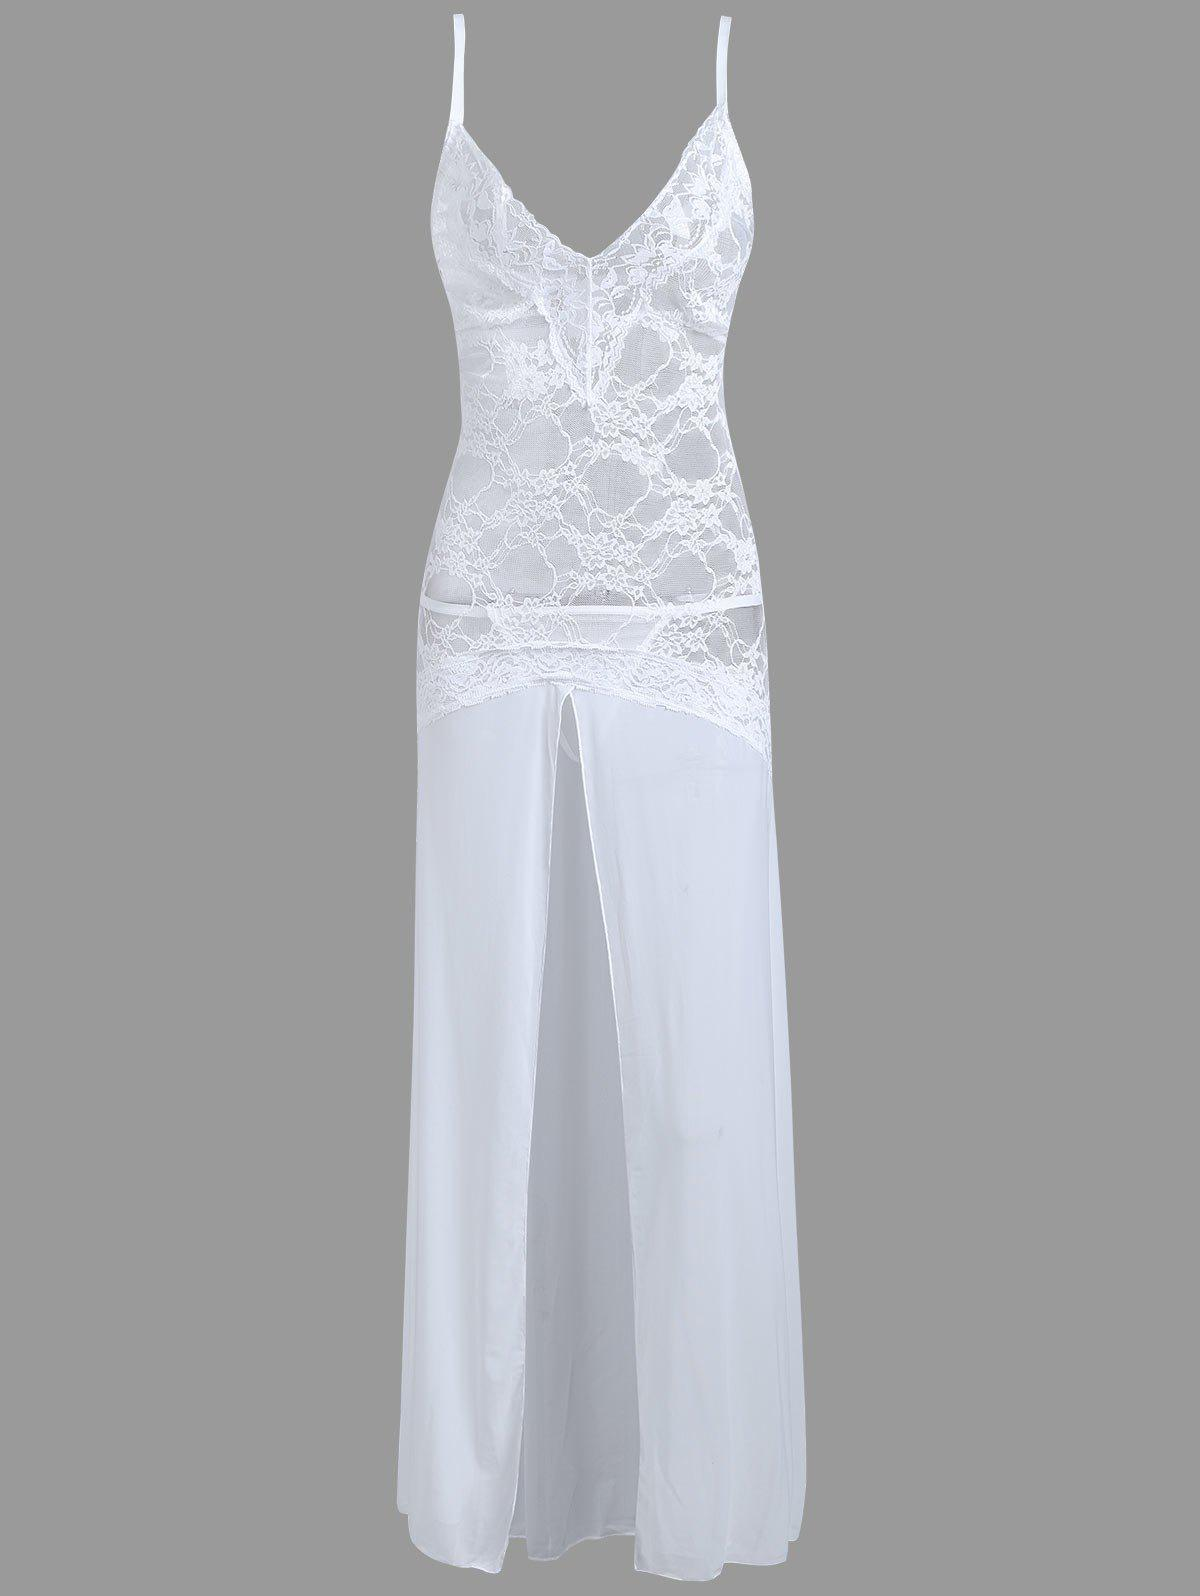 High Slit Lace Long Sheer Slip Dress - WHITE L